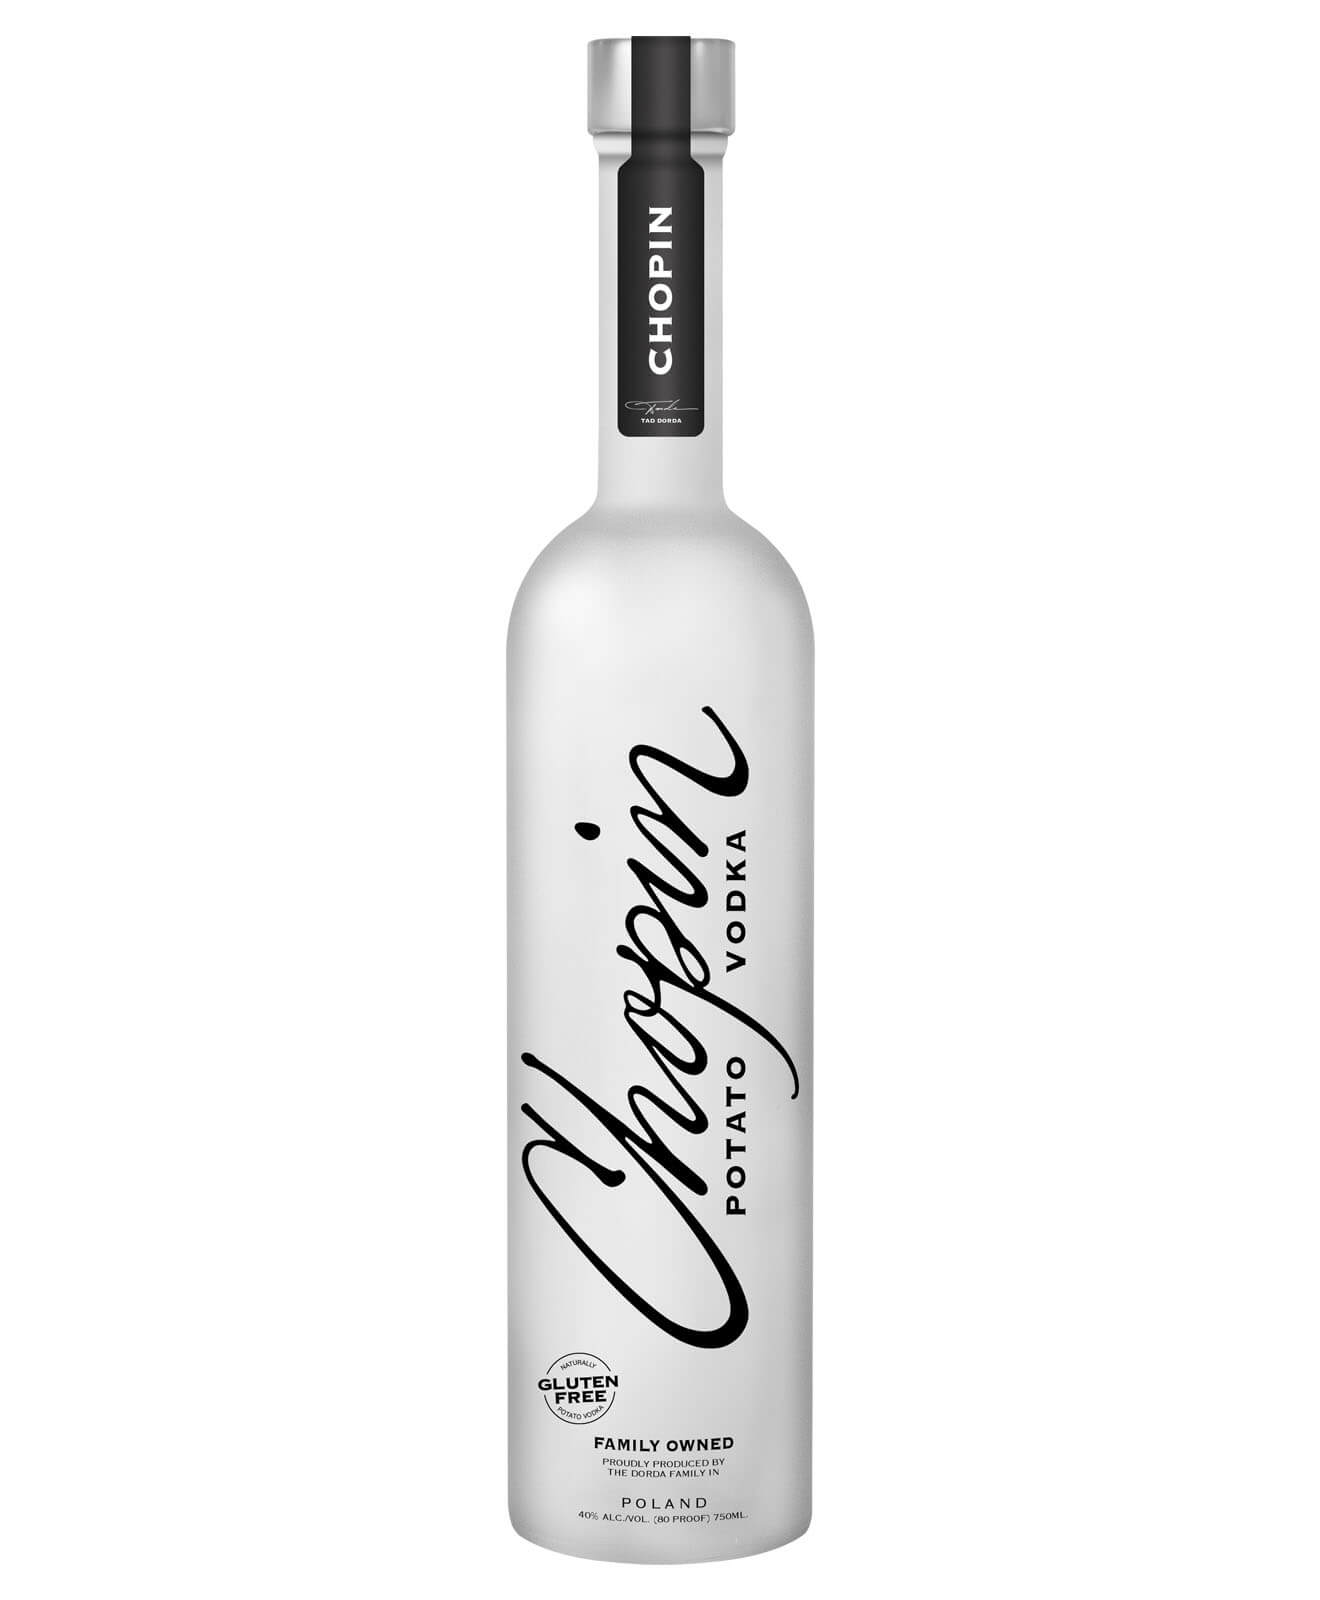 Chopin Potato Vodka, bottle on white